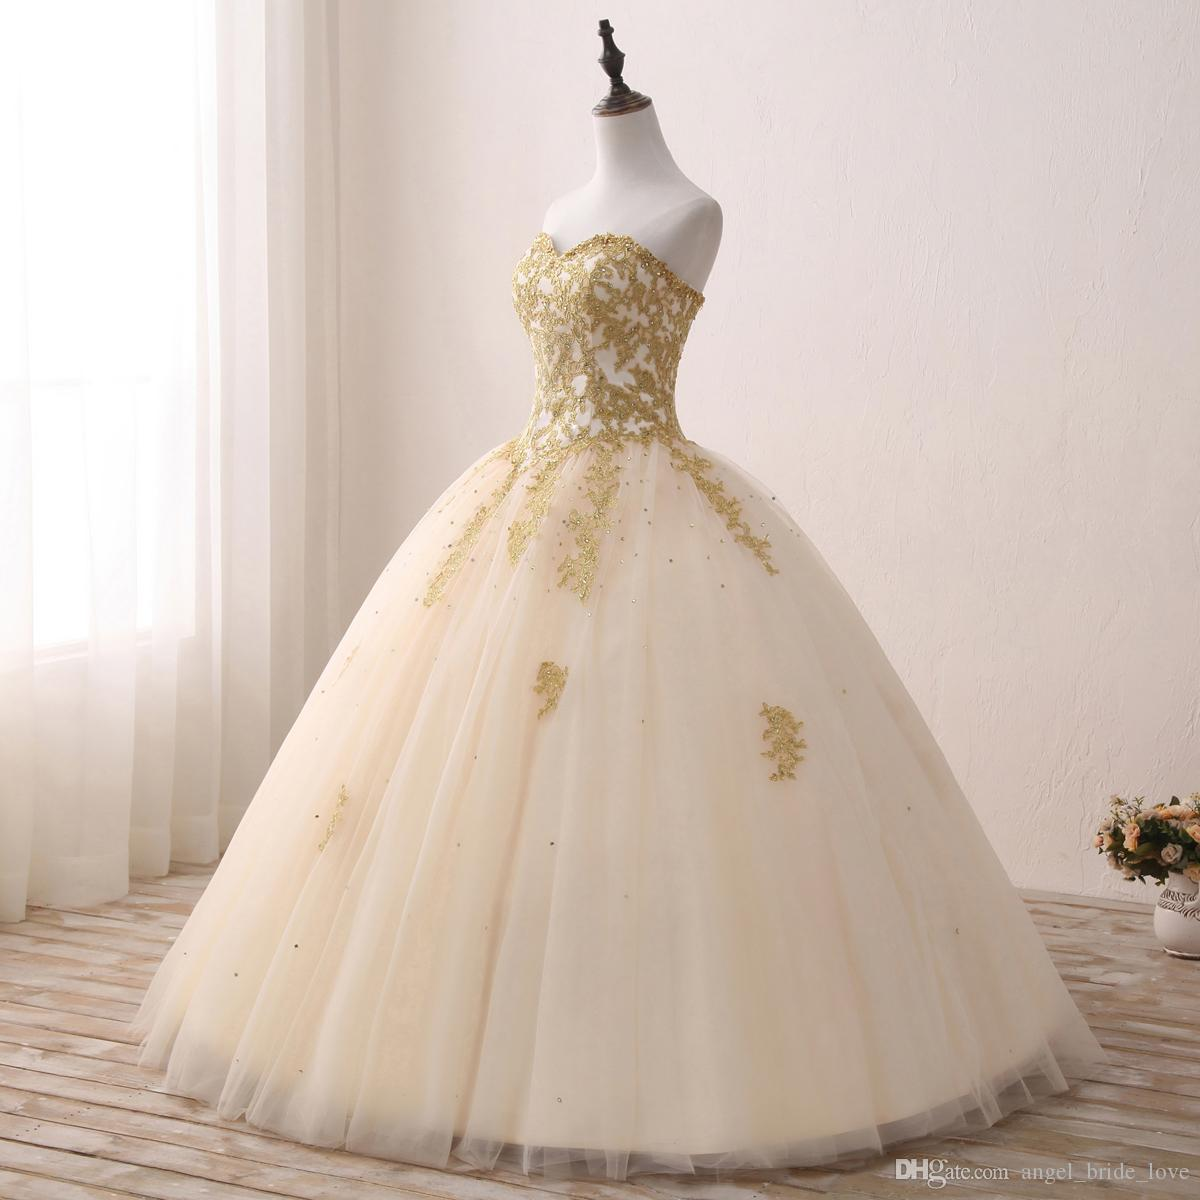 504211c30c9 New Gold Appliques Ball Gown Quinceanera Dress 2018 Sparkle Crystal Tulle  Floor Length Sweet 16 Dresses 15 Year Prom Gowns BQ42 Quinceanera Dresses  City ...